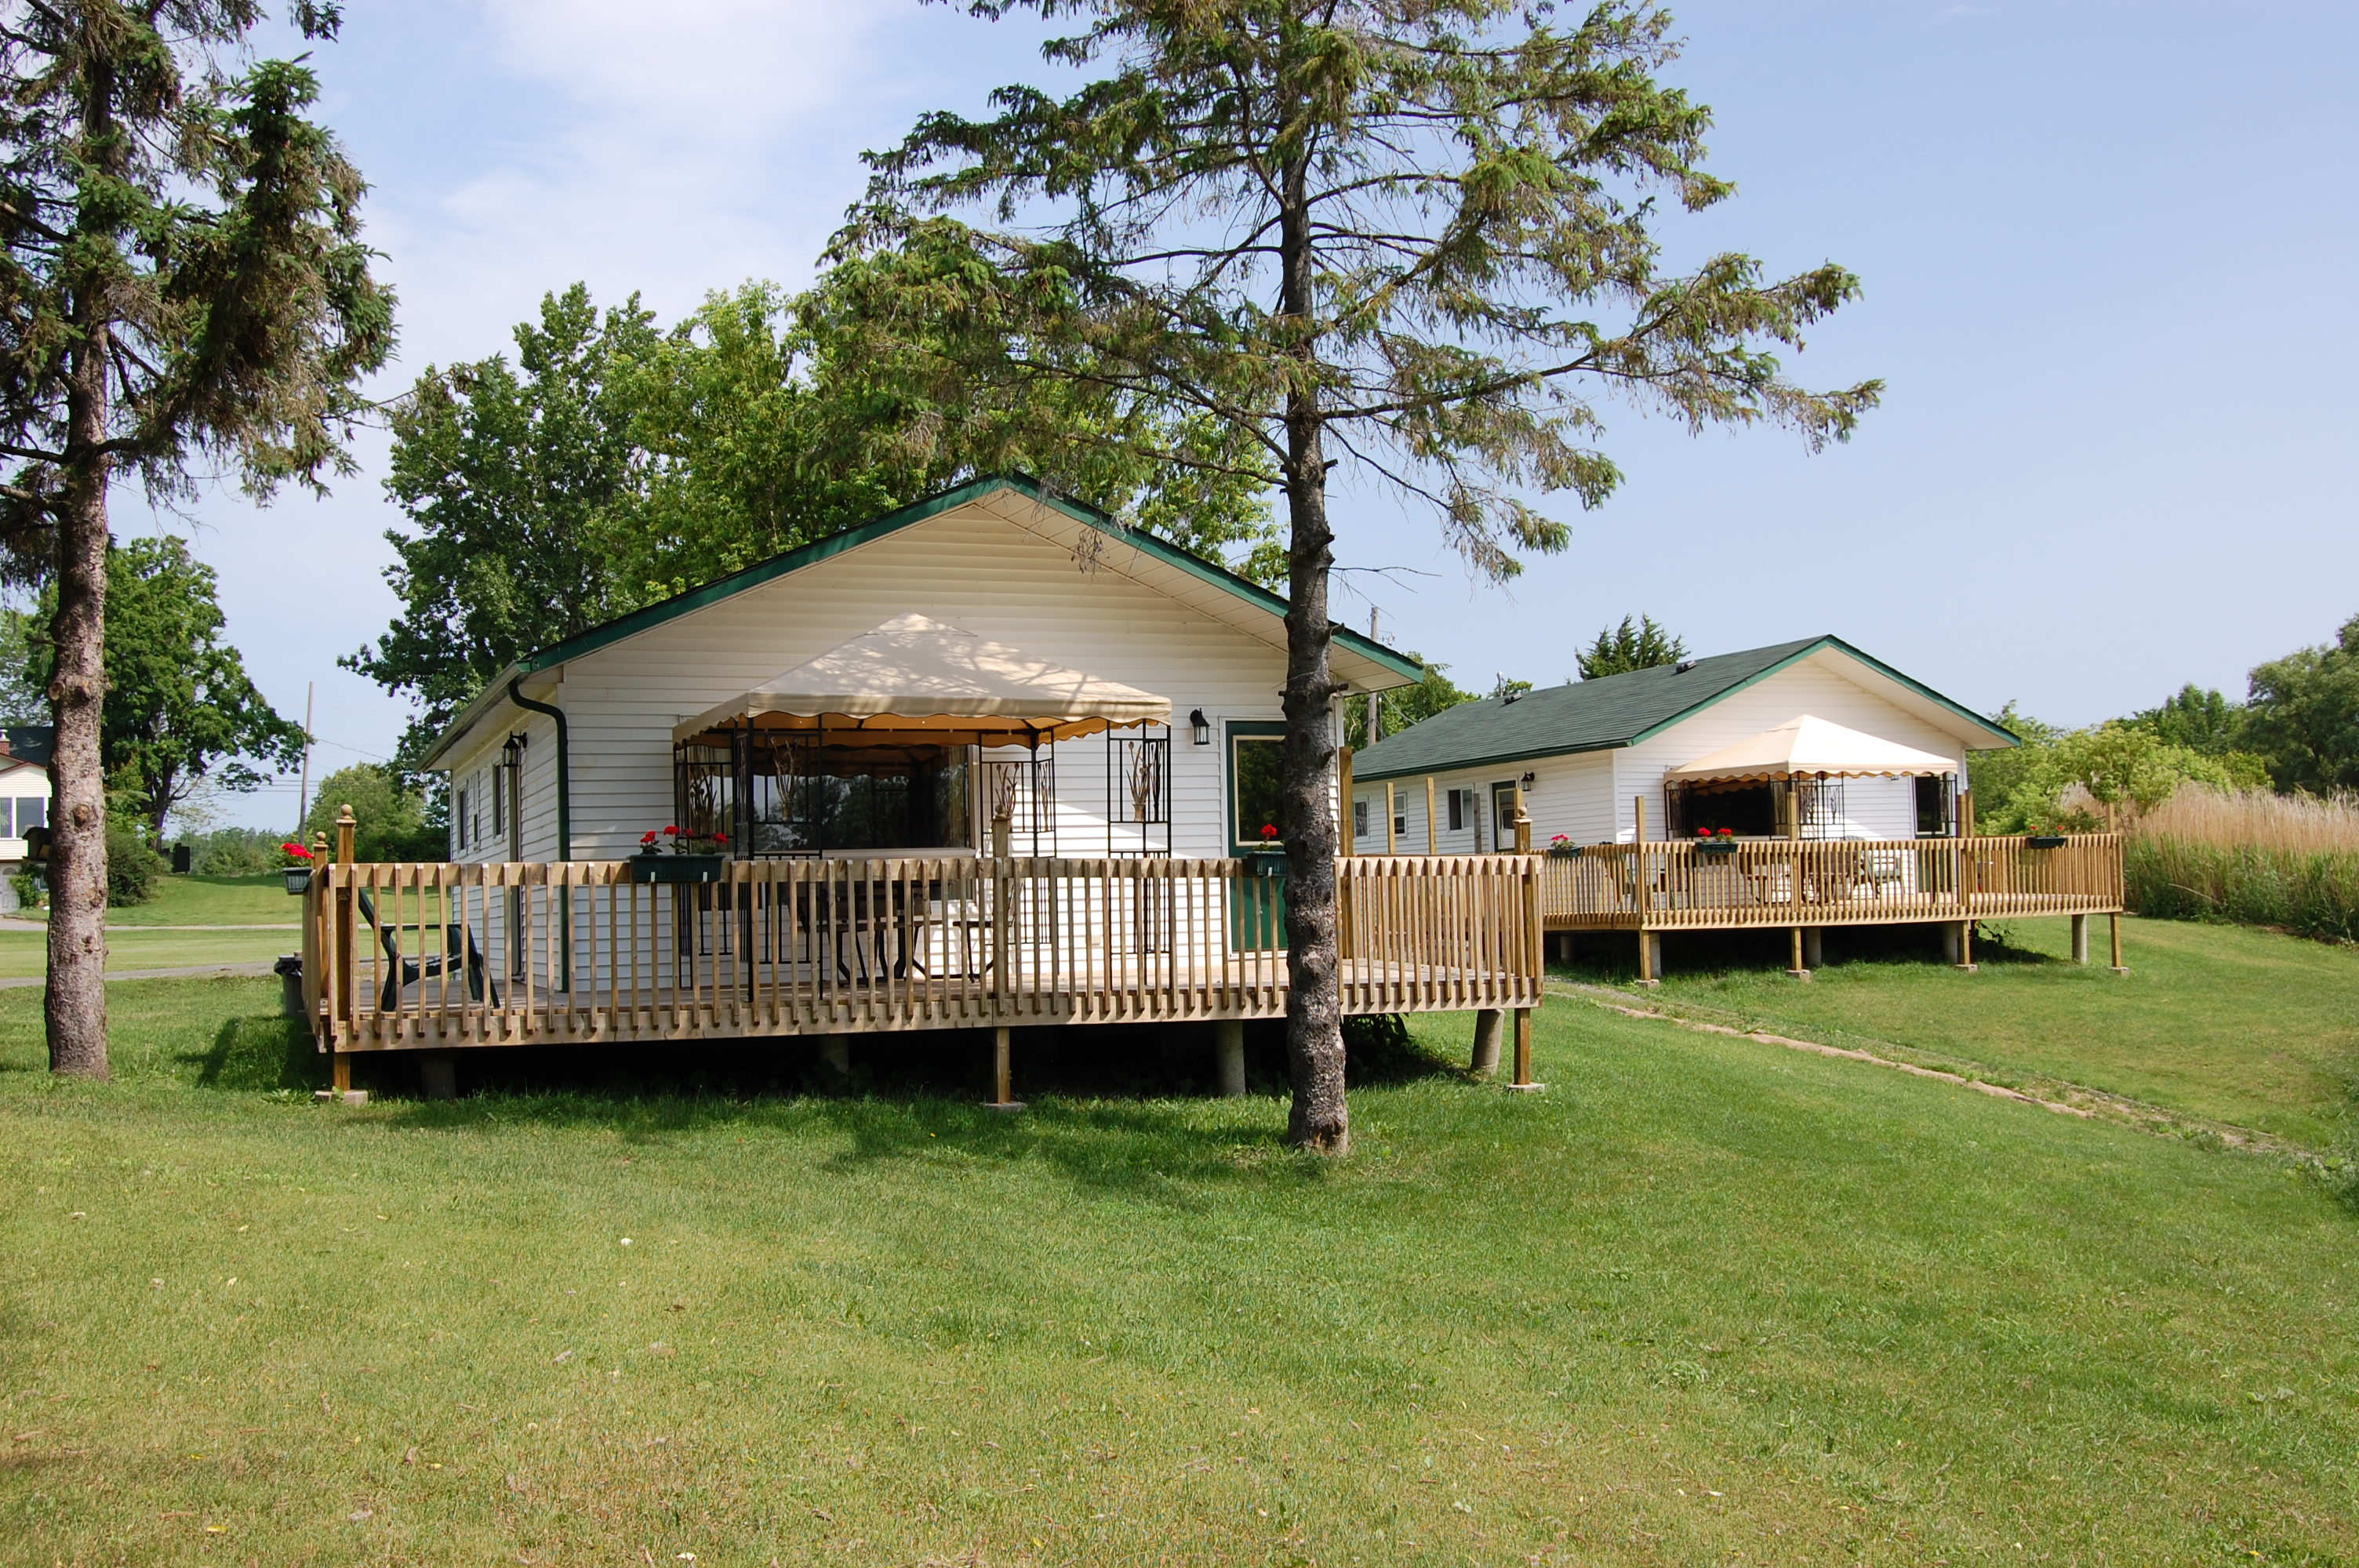 Spencer 39 s 1000 islands cottages boat rentals 1000 islands fishing charters - Cottage image ...